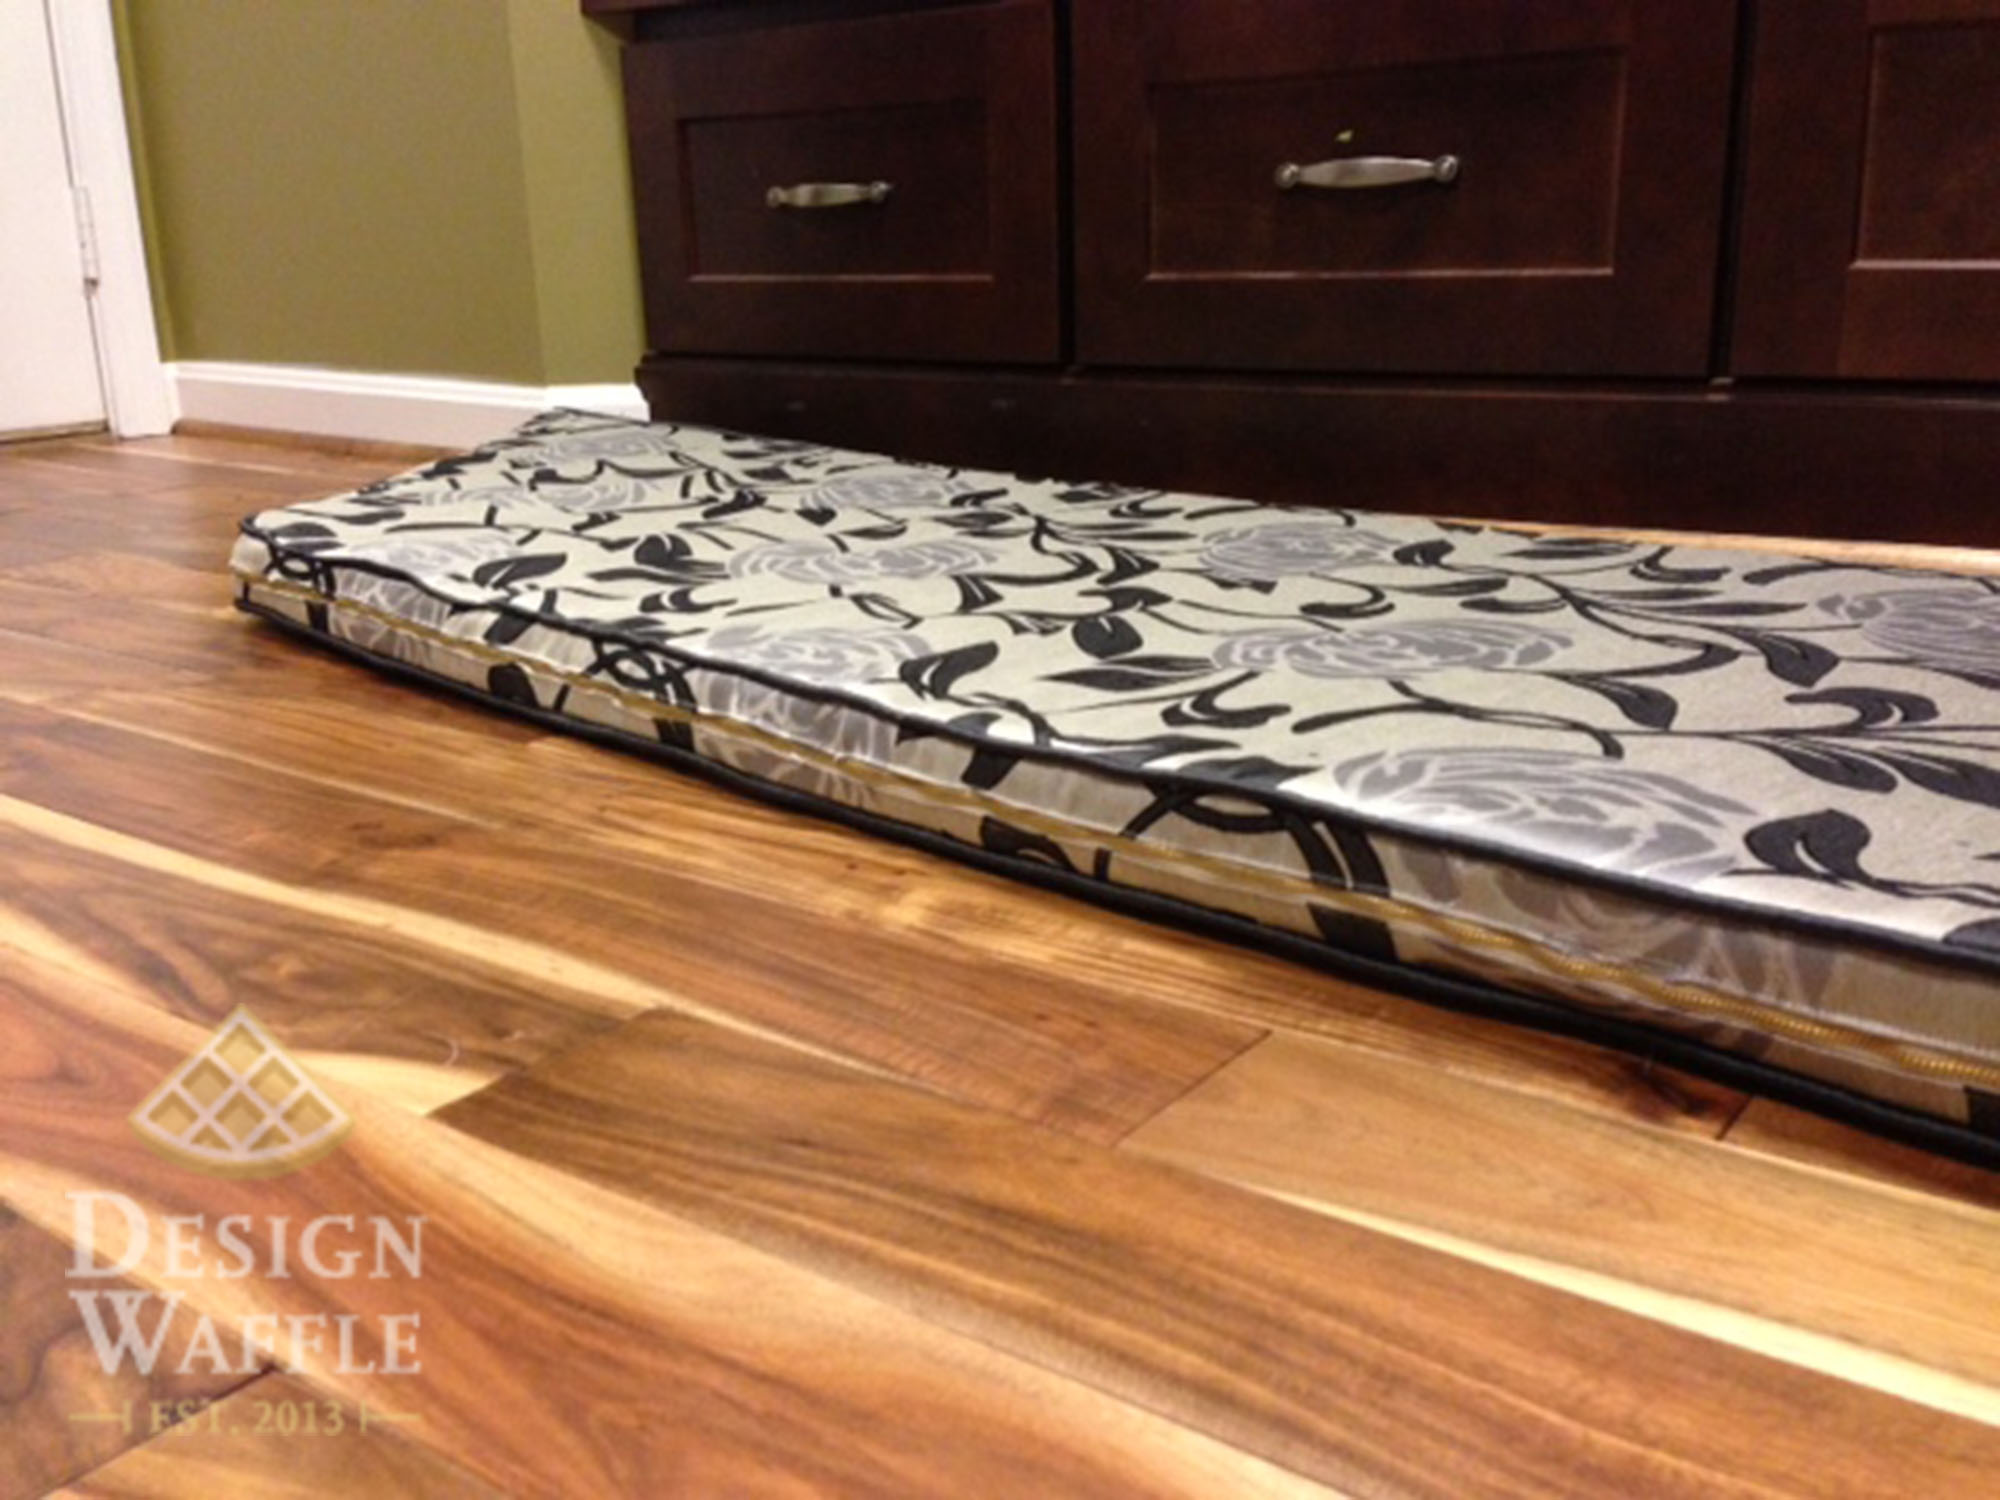 Diy Window Seat Cushion With Zipper